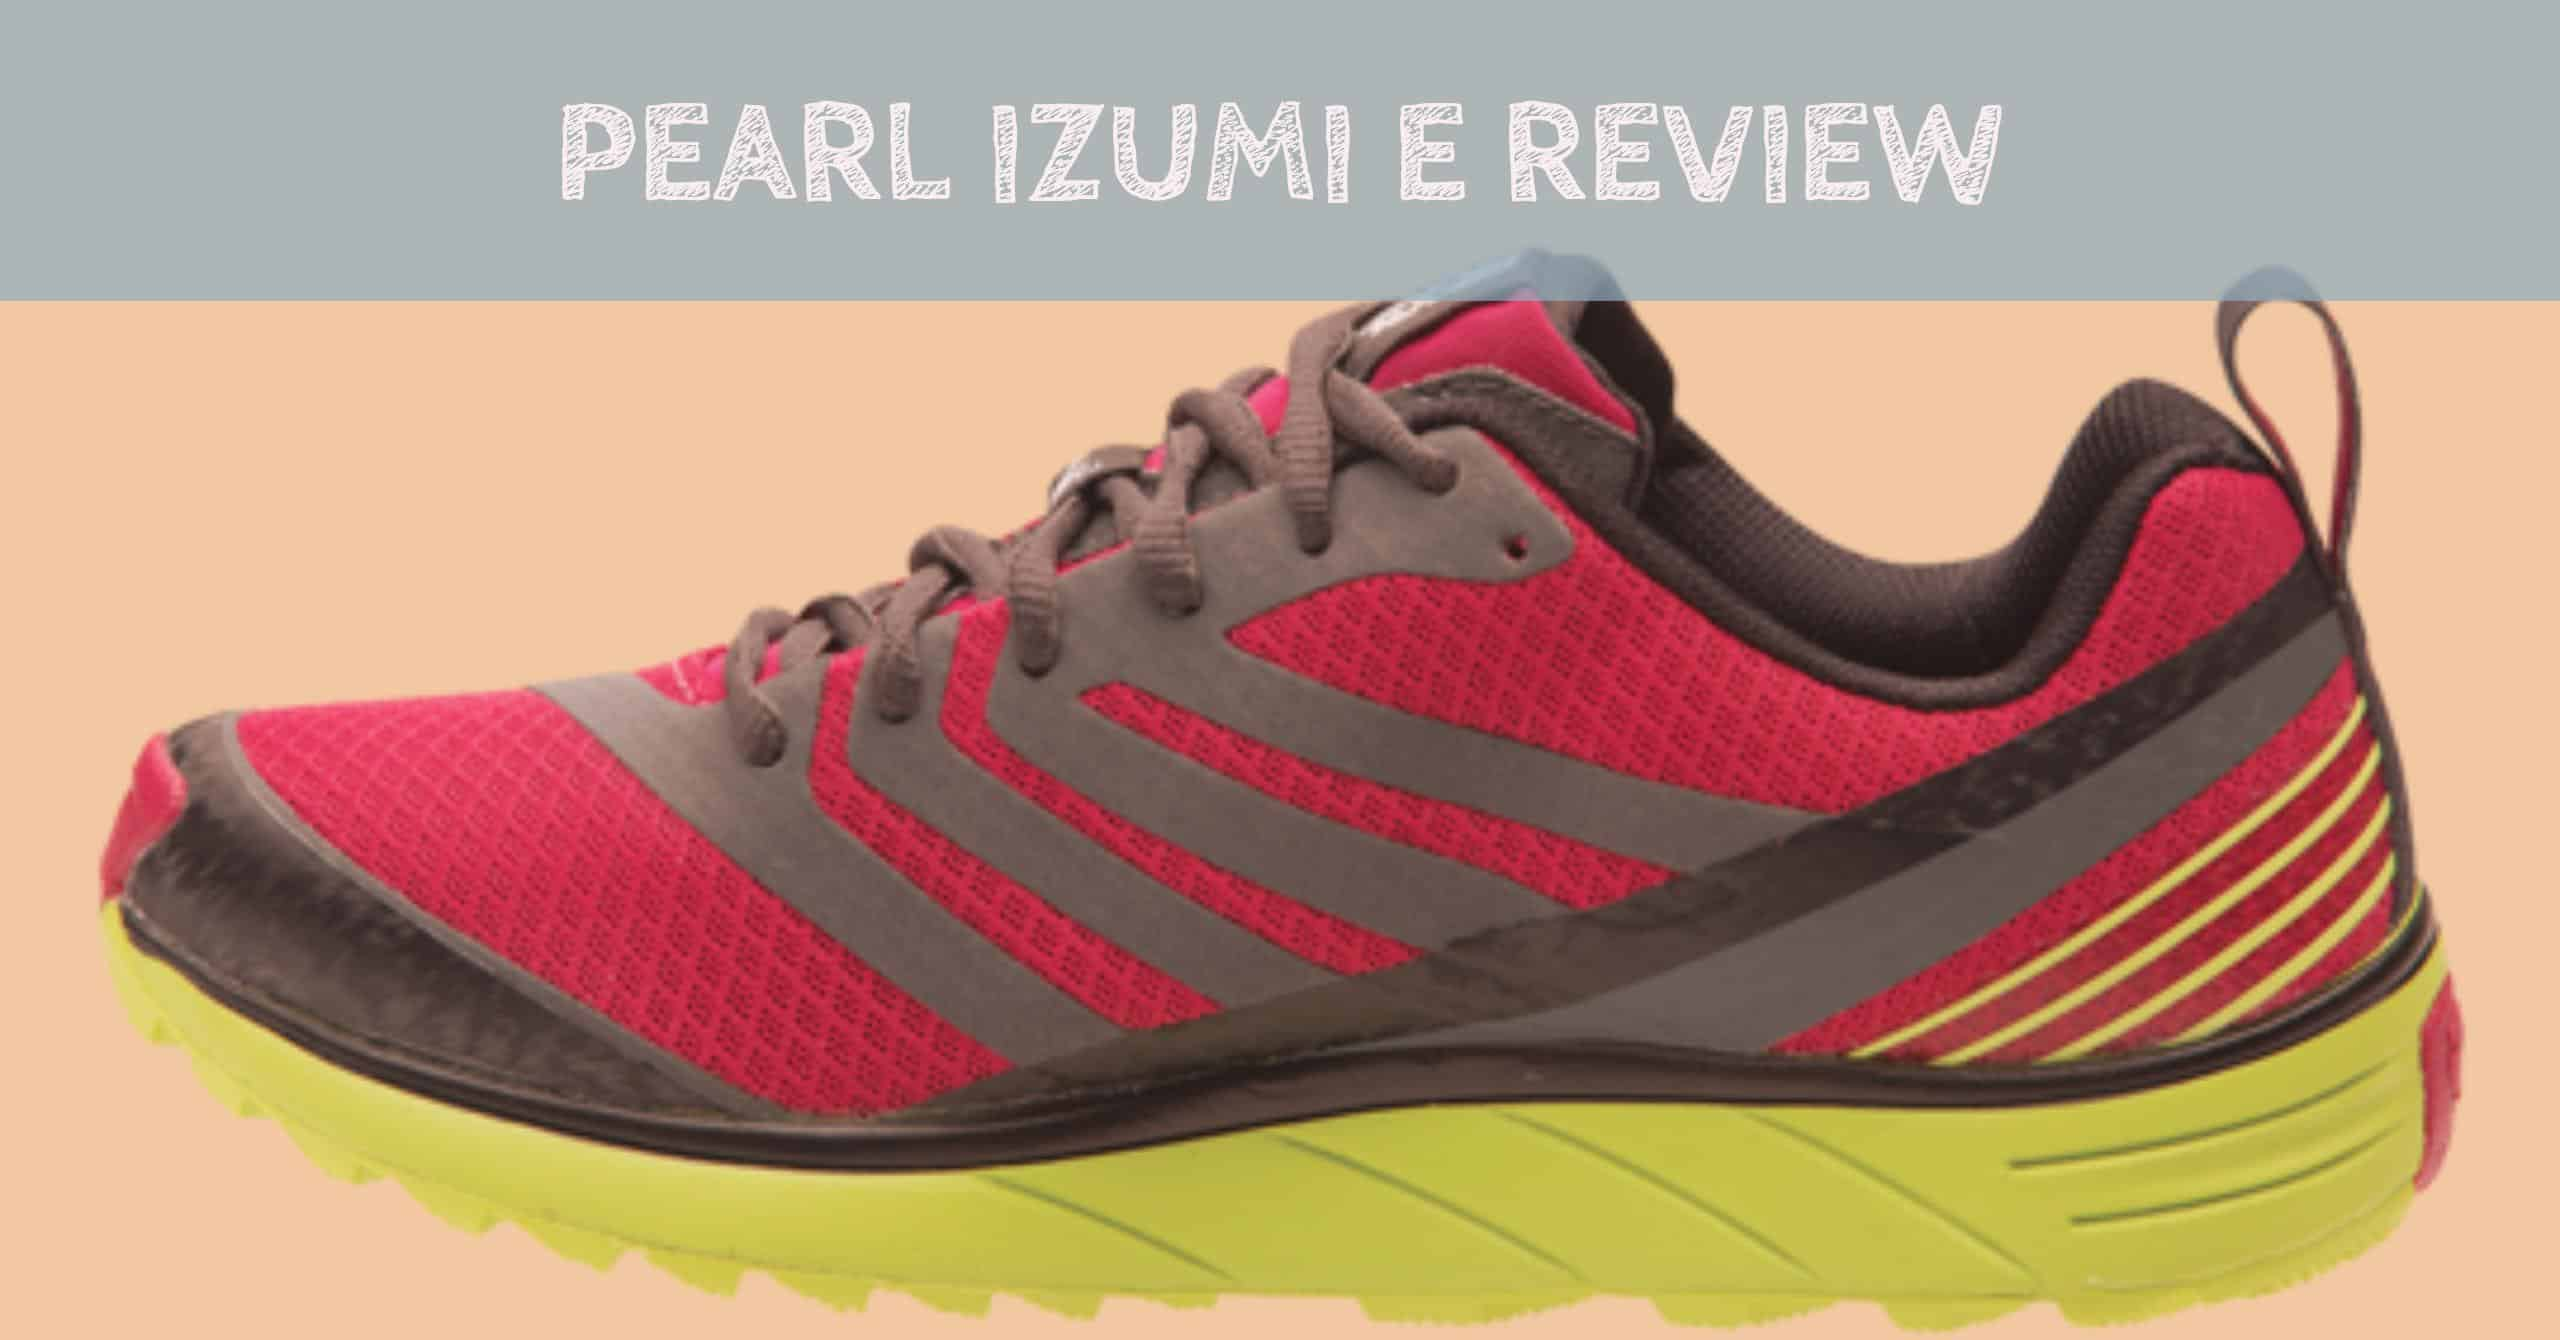 A relatively unknown shoe brand outside of the running circle, Pearl has quietly assembled soild running shoes. We analyze one of their more popular shoes in our Pearl Izumi E review